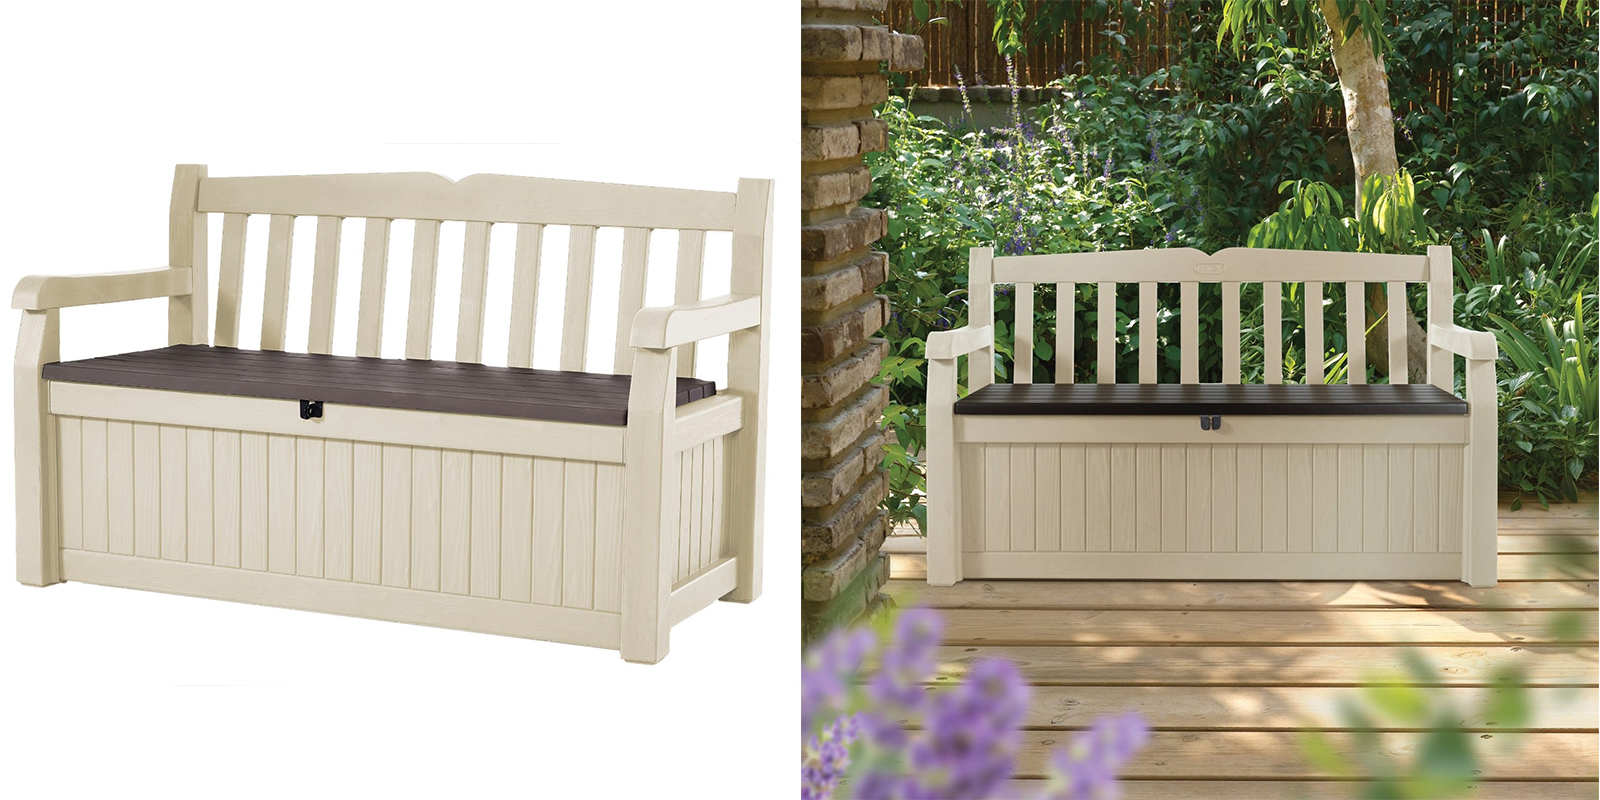 Patio Chair - Outdoor Patio Storage Bench